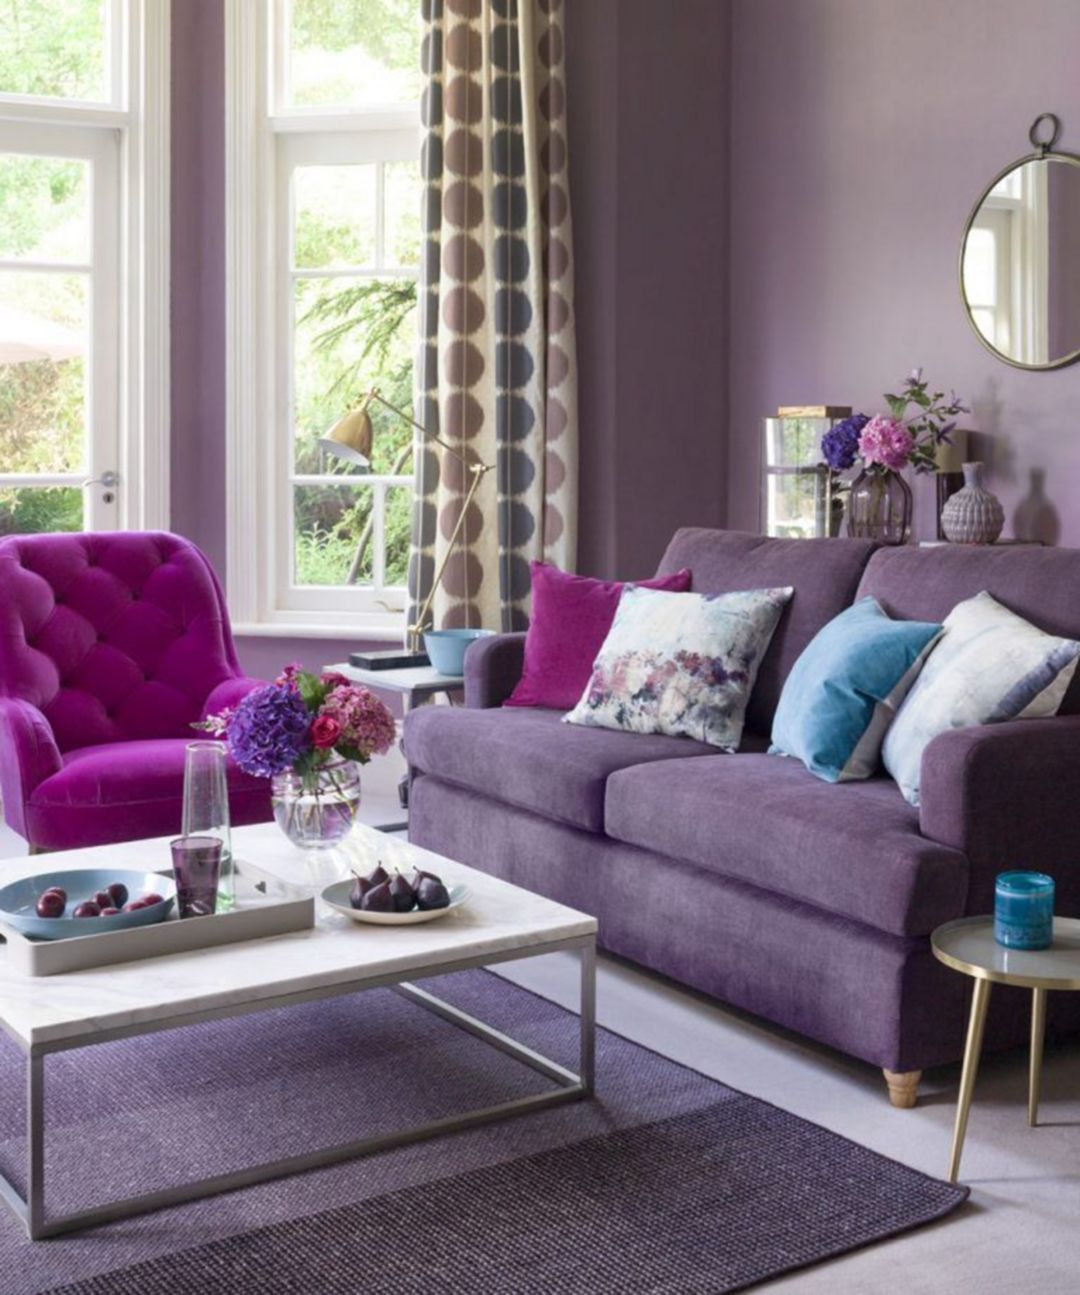 Inspiring 7 Cute Living Room With Purple Color Schemes Design